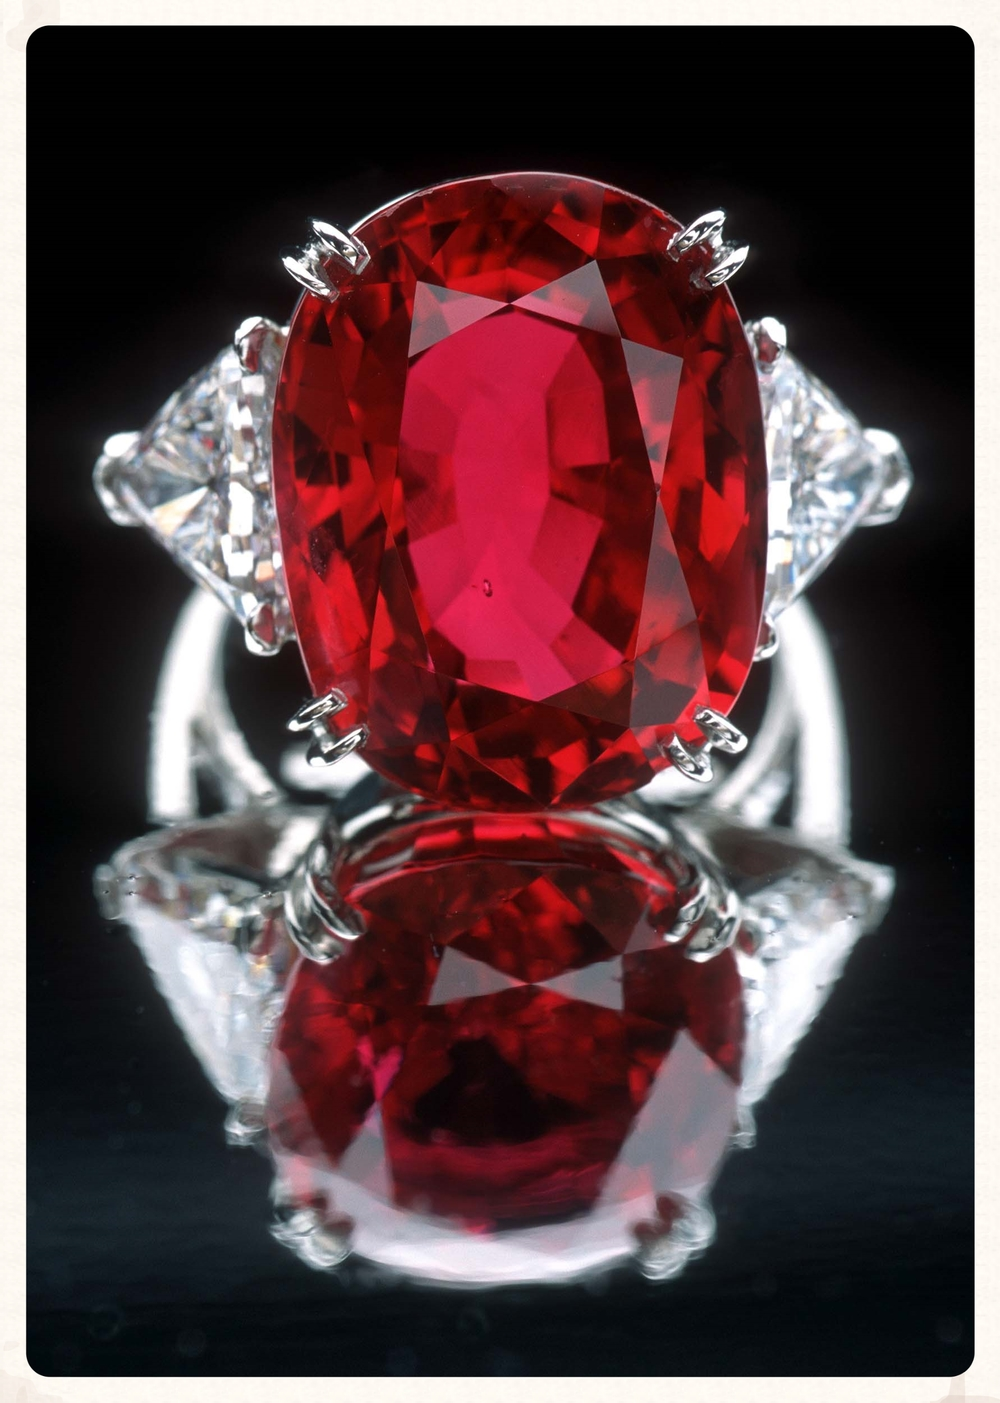 The Carmen Lucia Ruby. From the Smithsonian Institution.